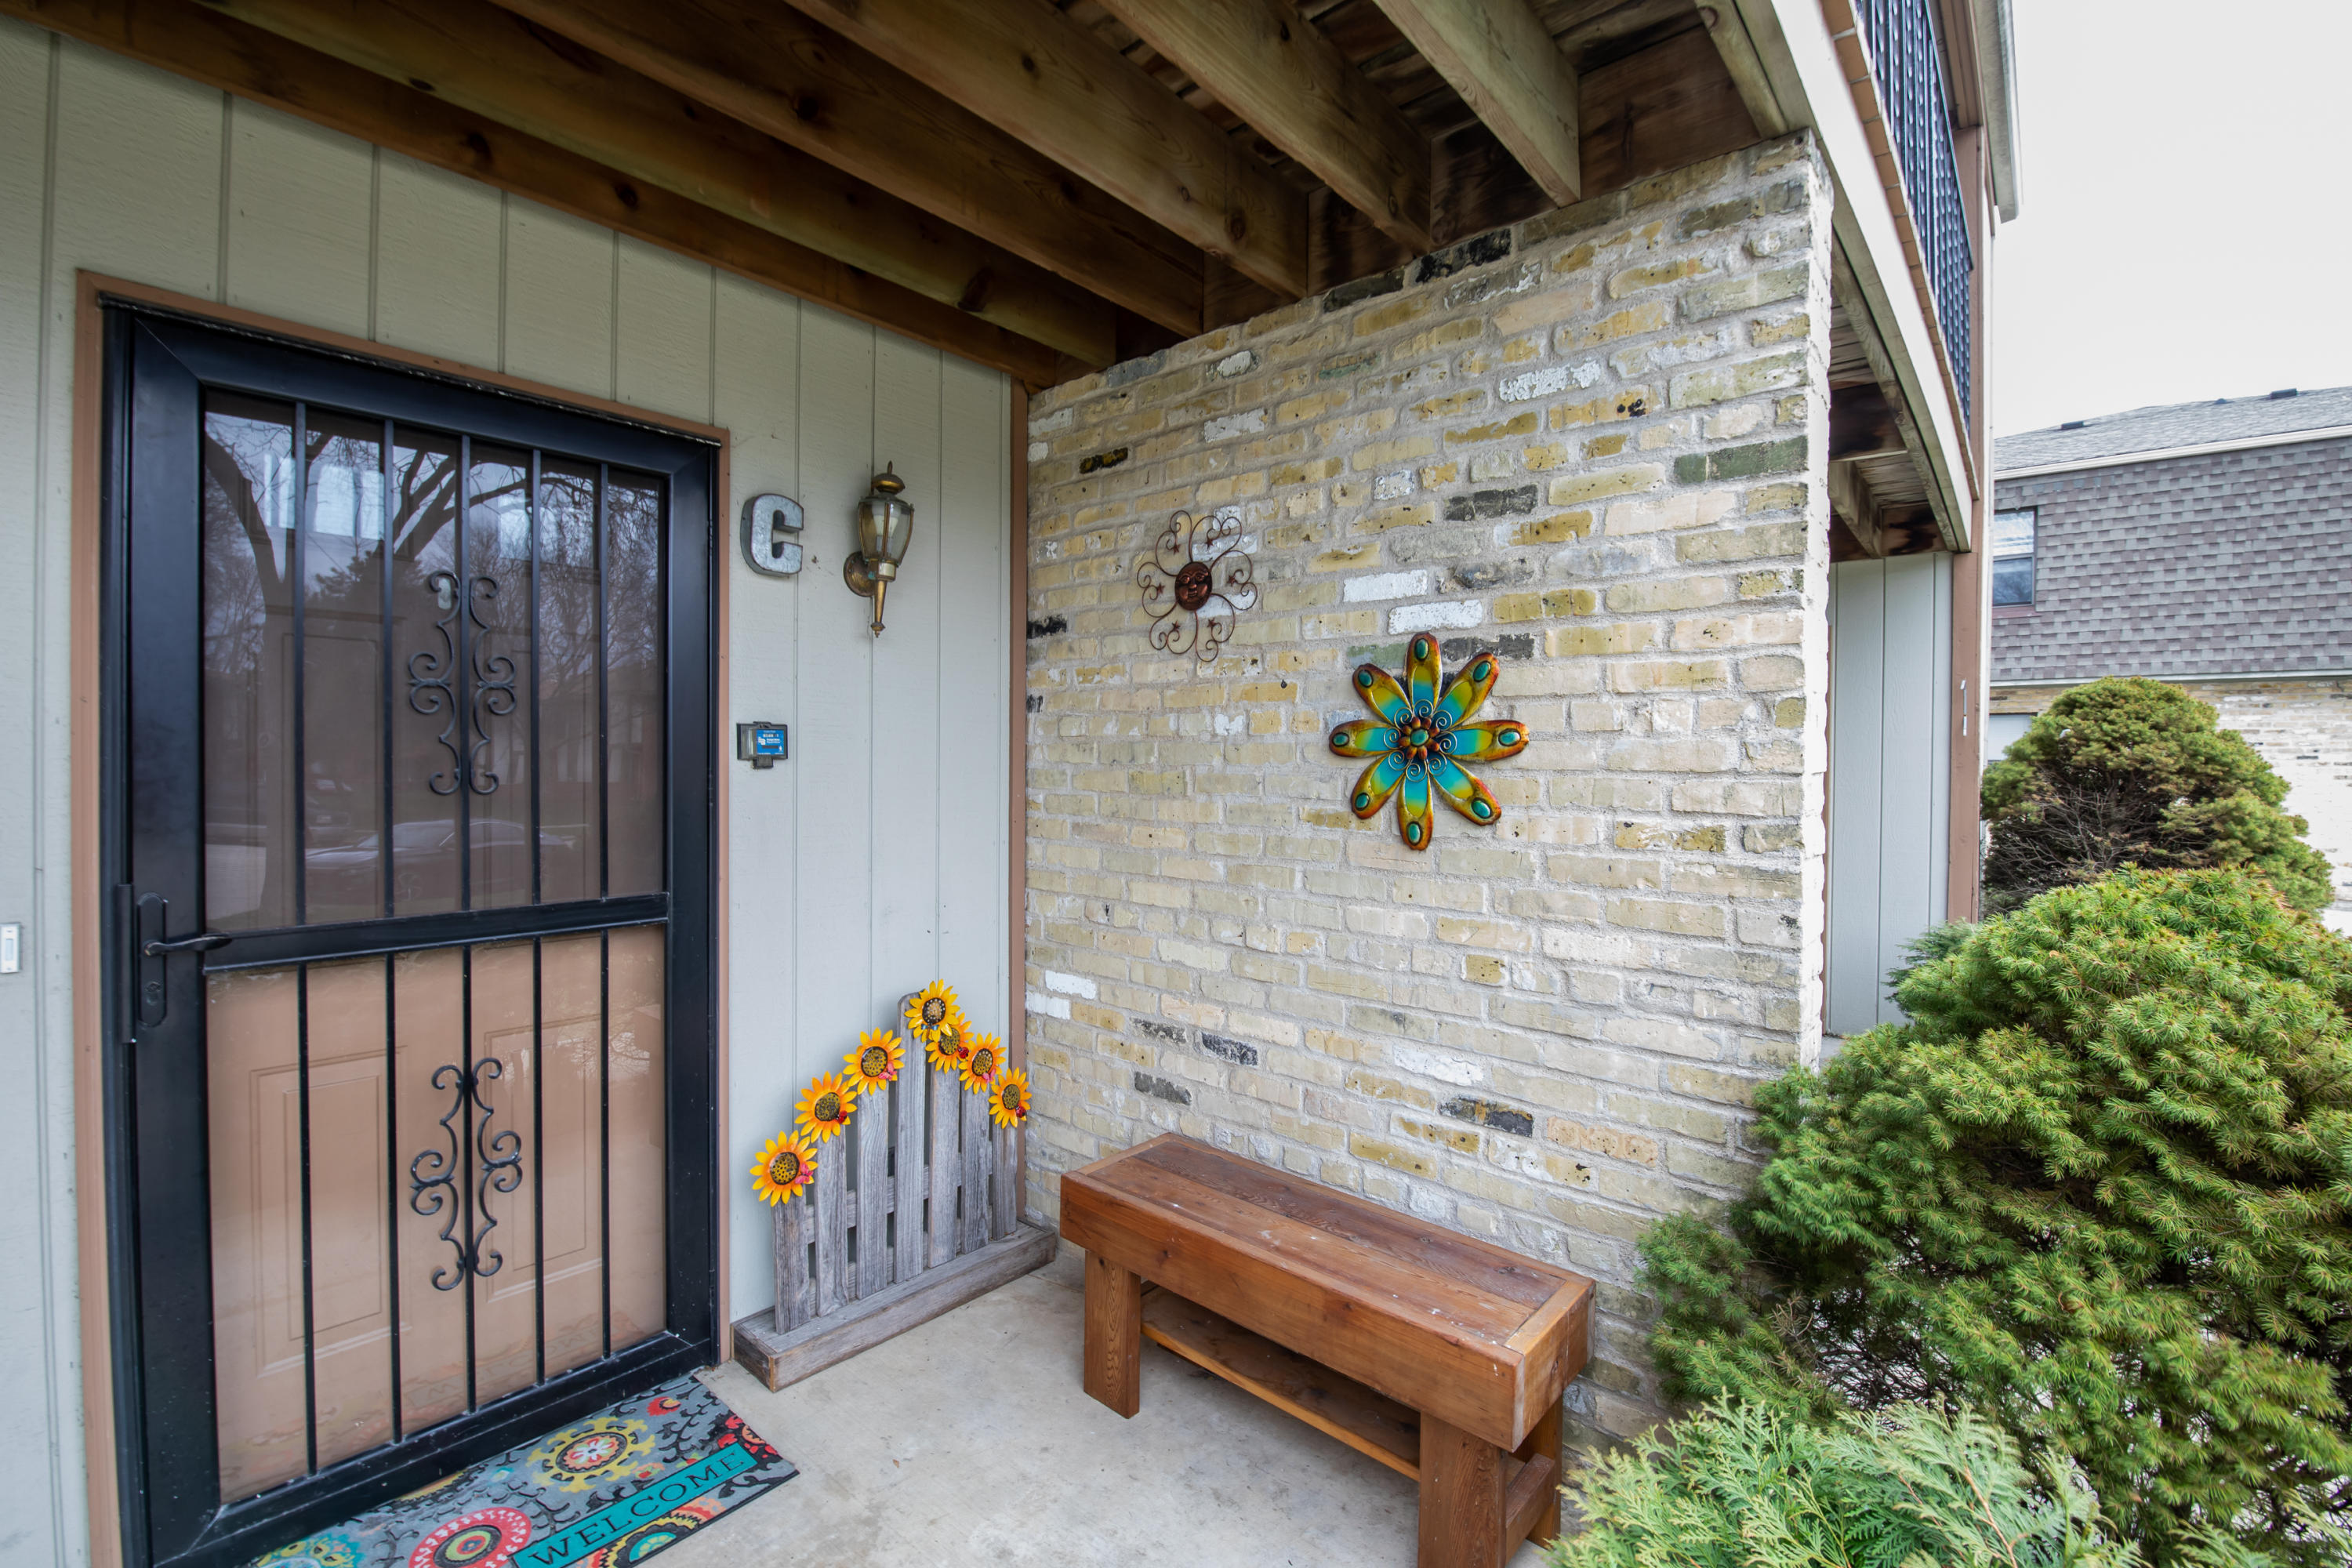 11515 Orchard Court, West Allis, Wisconsin 53214, 2 Bedrooms Bedrooms, 5 Rooms Rooms,1 BathroomBathrooms,Condominiums,For Sale,Orchard Court,2,1632452